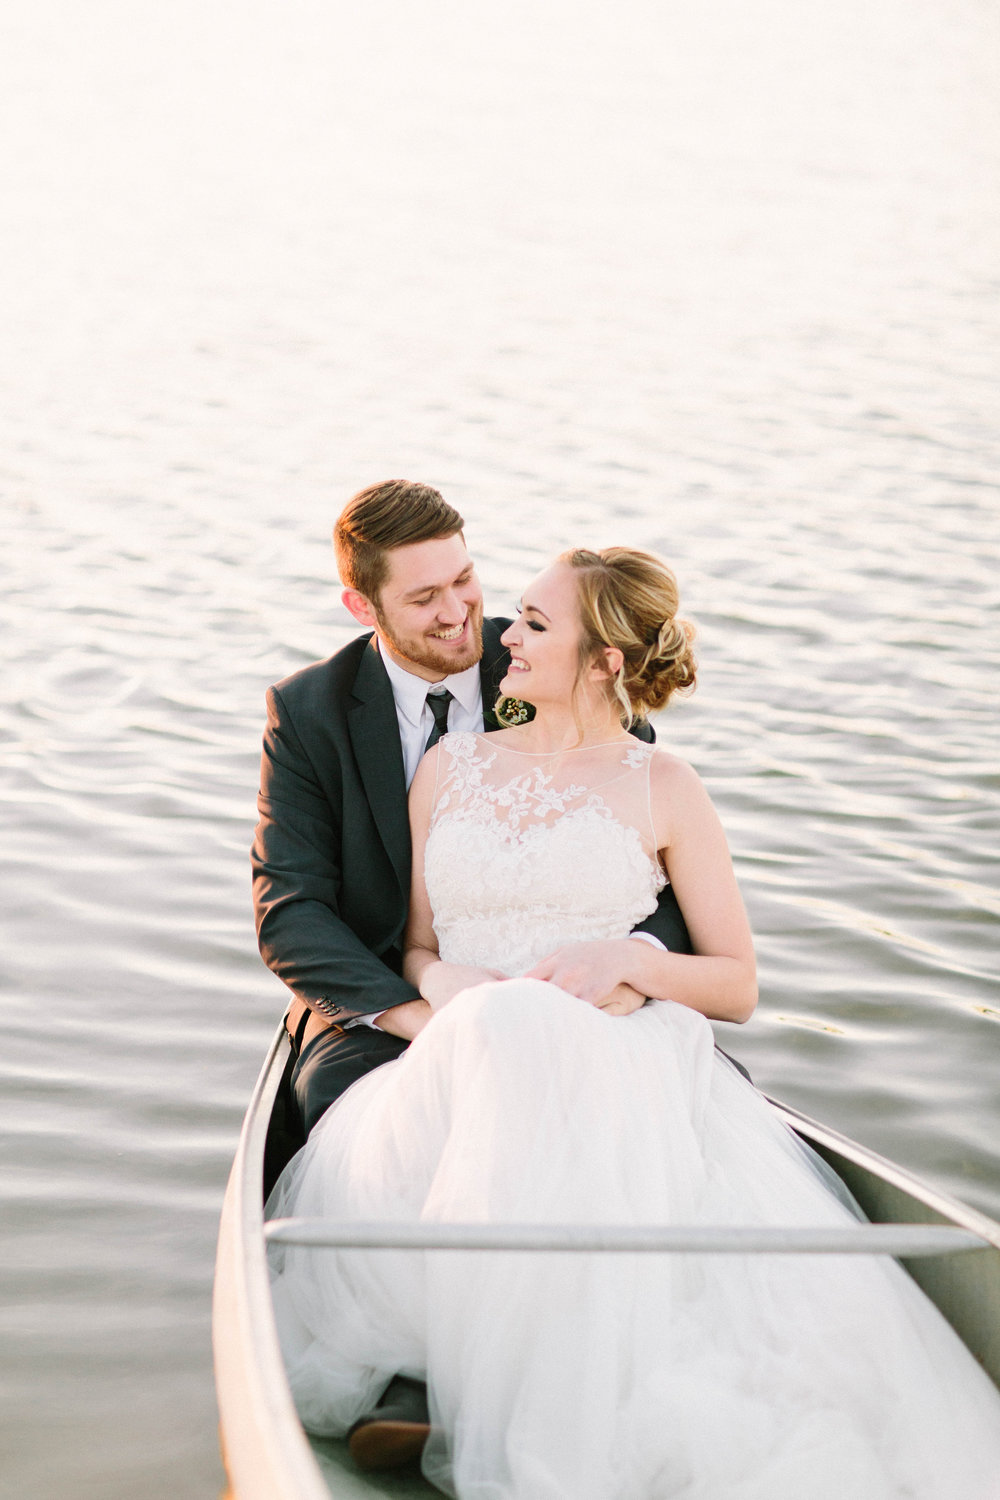 Wedding photograph on The Pour Vineyard lake